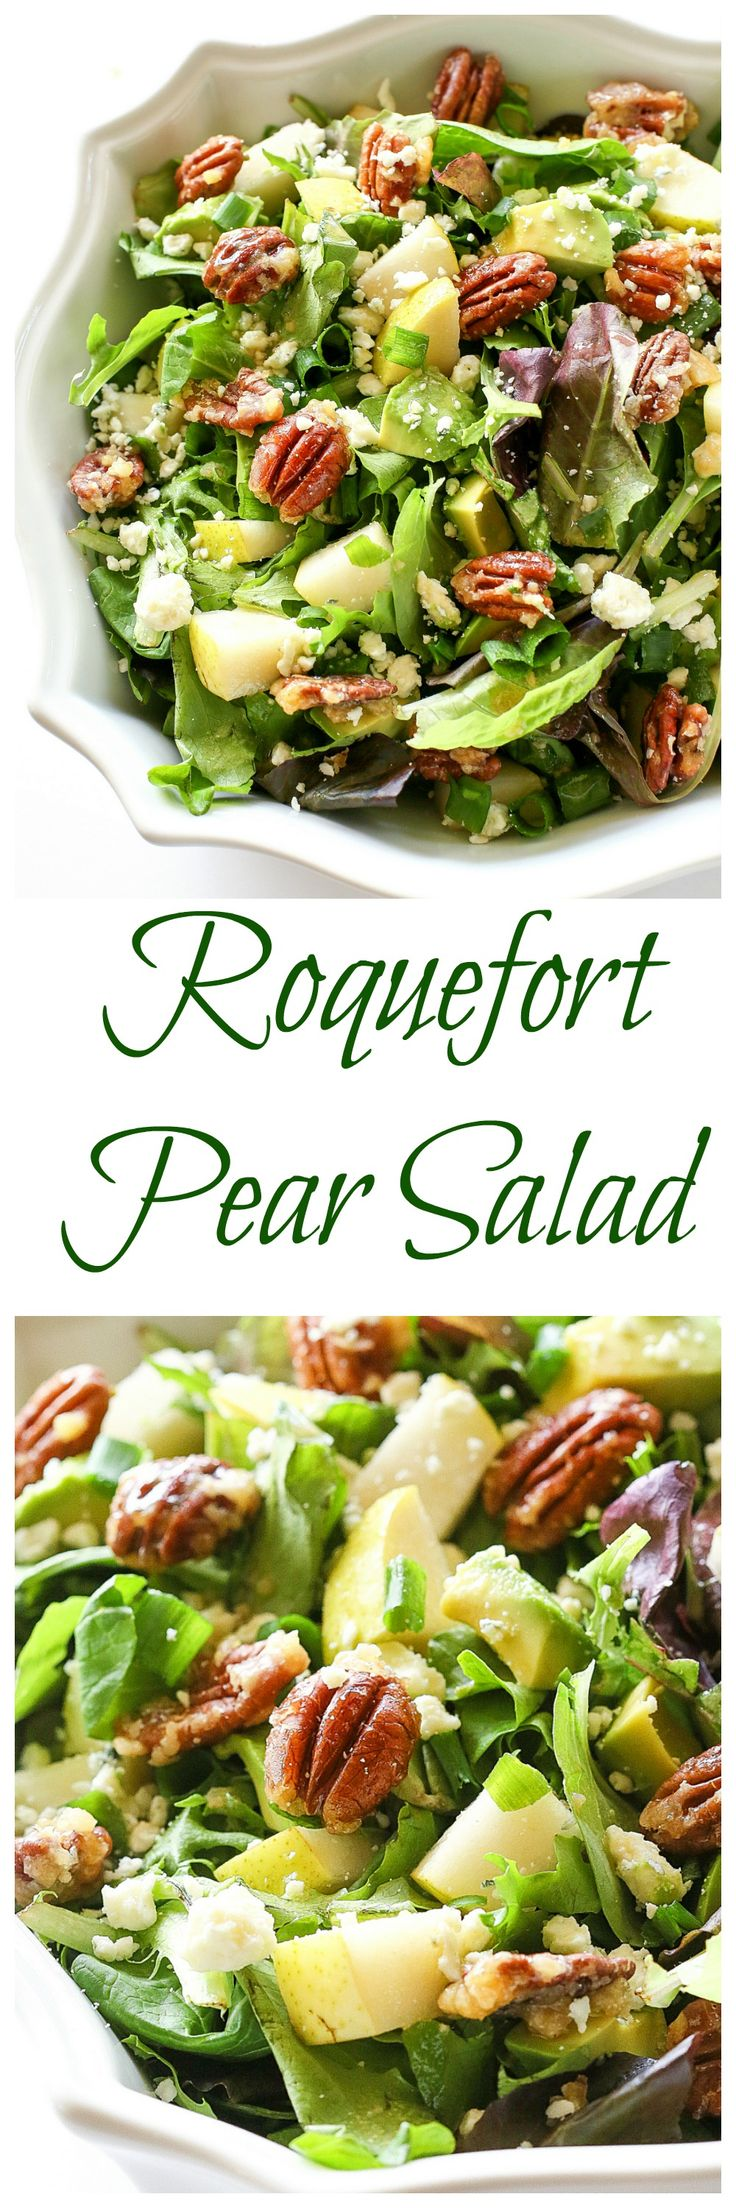 Roquefort Pear Salad - one of my favorite salads topped with candied pecans! the-girl-who-ate-everything.com